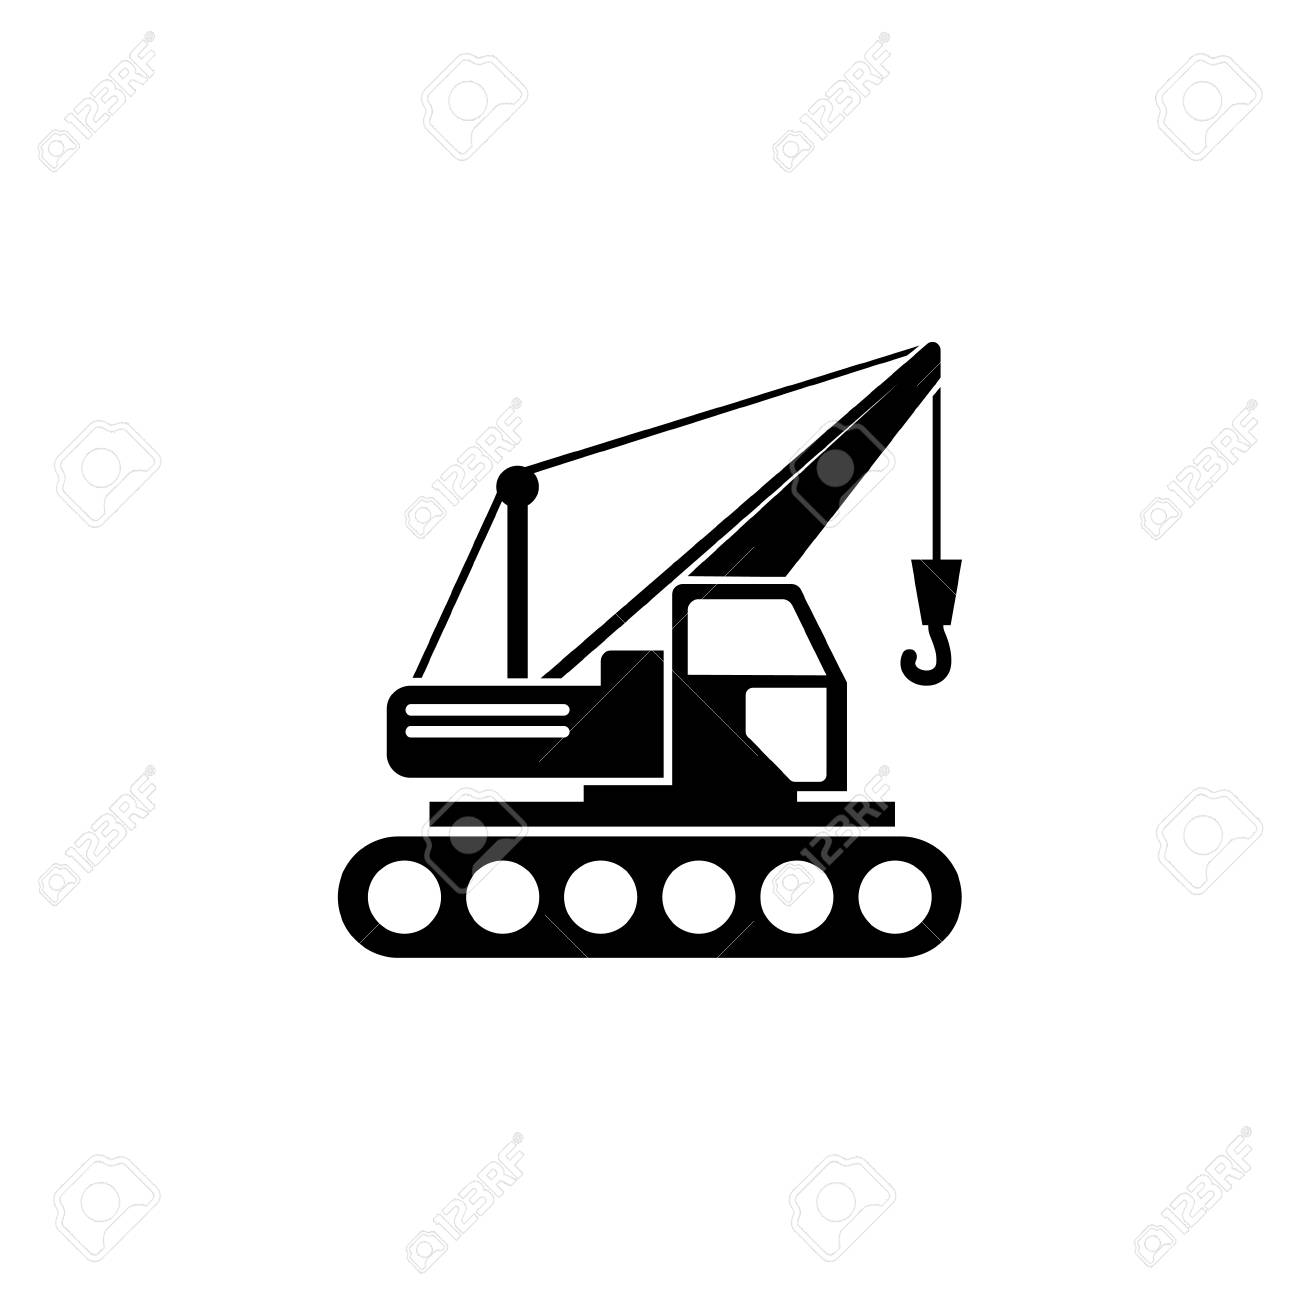 Building Crawler Crane  Flat Vector Icon illustration  Simple